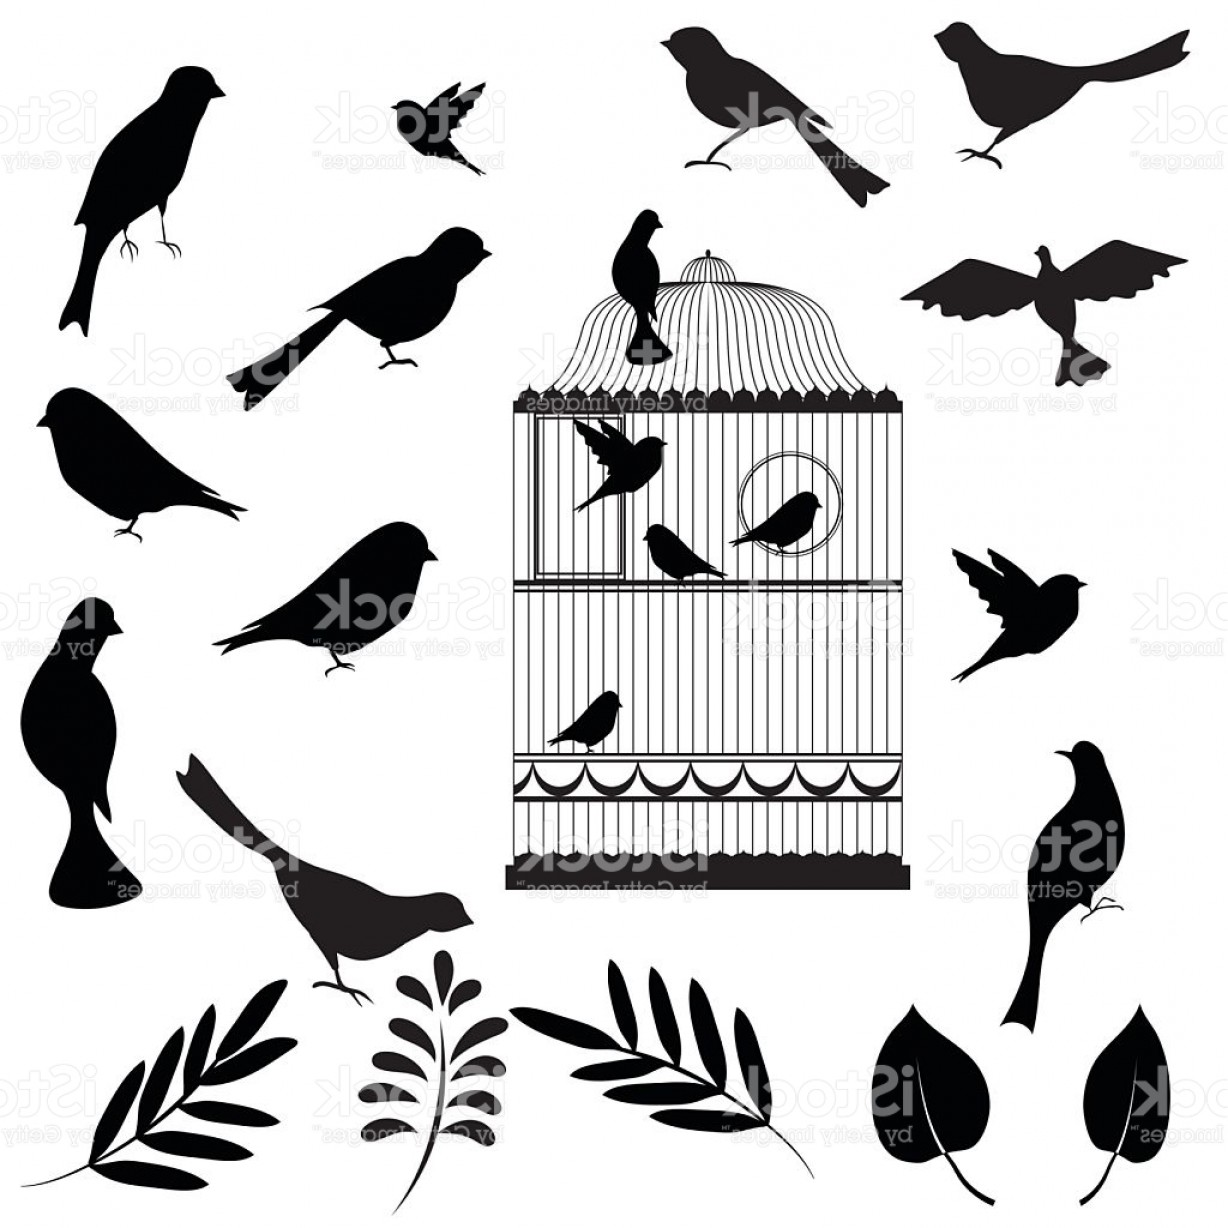 Owl Silhouette Vector Art: Vector Illustration Of Bird Cage Gm